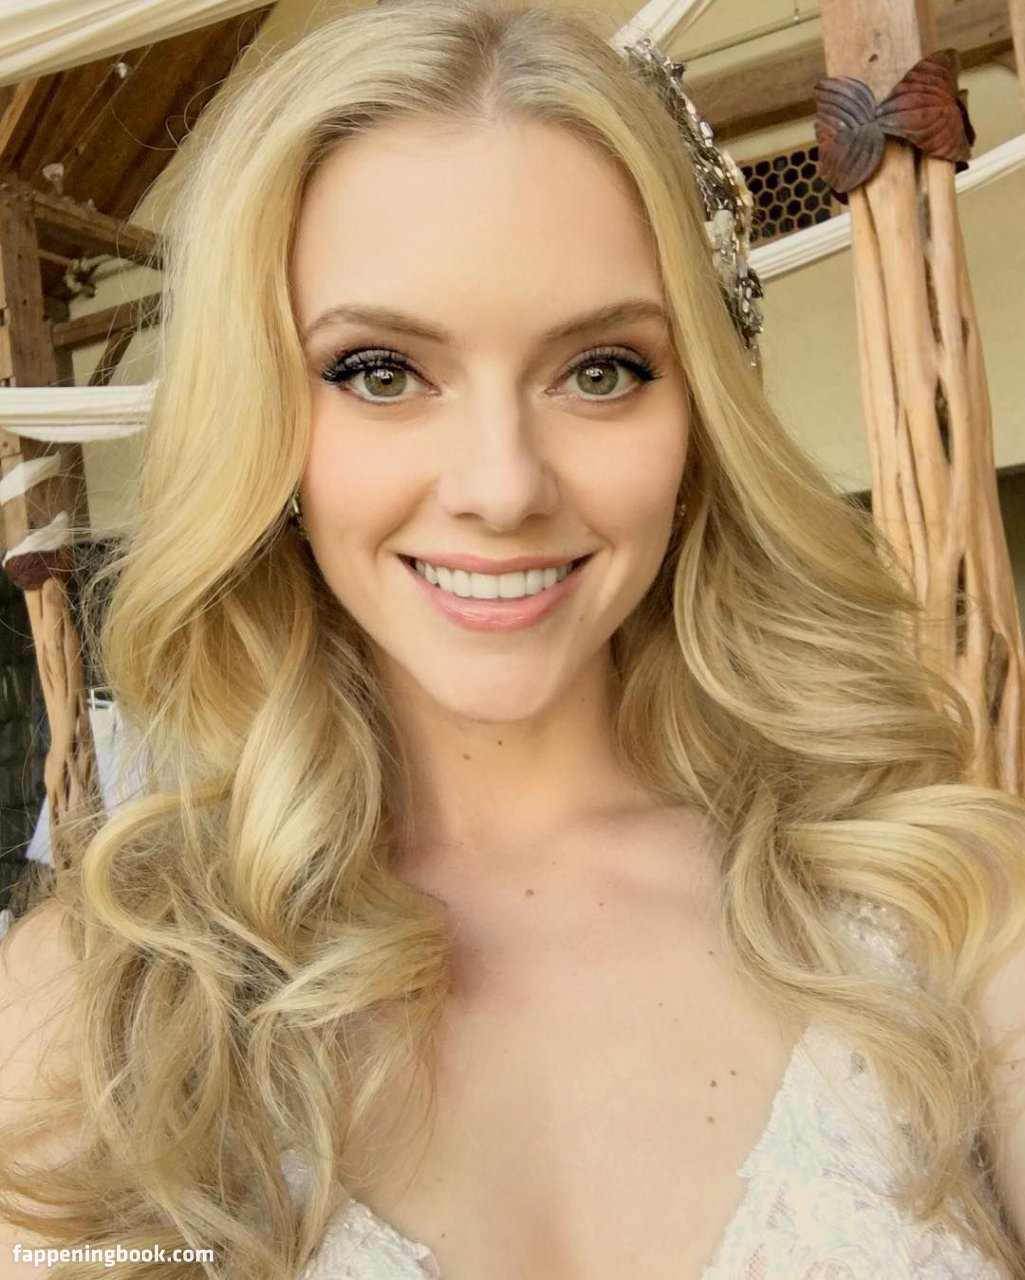 Elle Evans Nude, Sexy, The Fappening, Uncensored - Photo